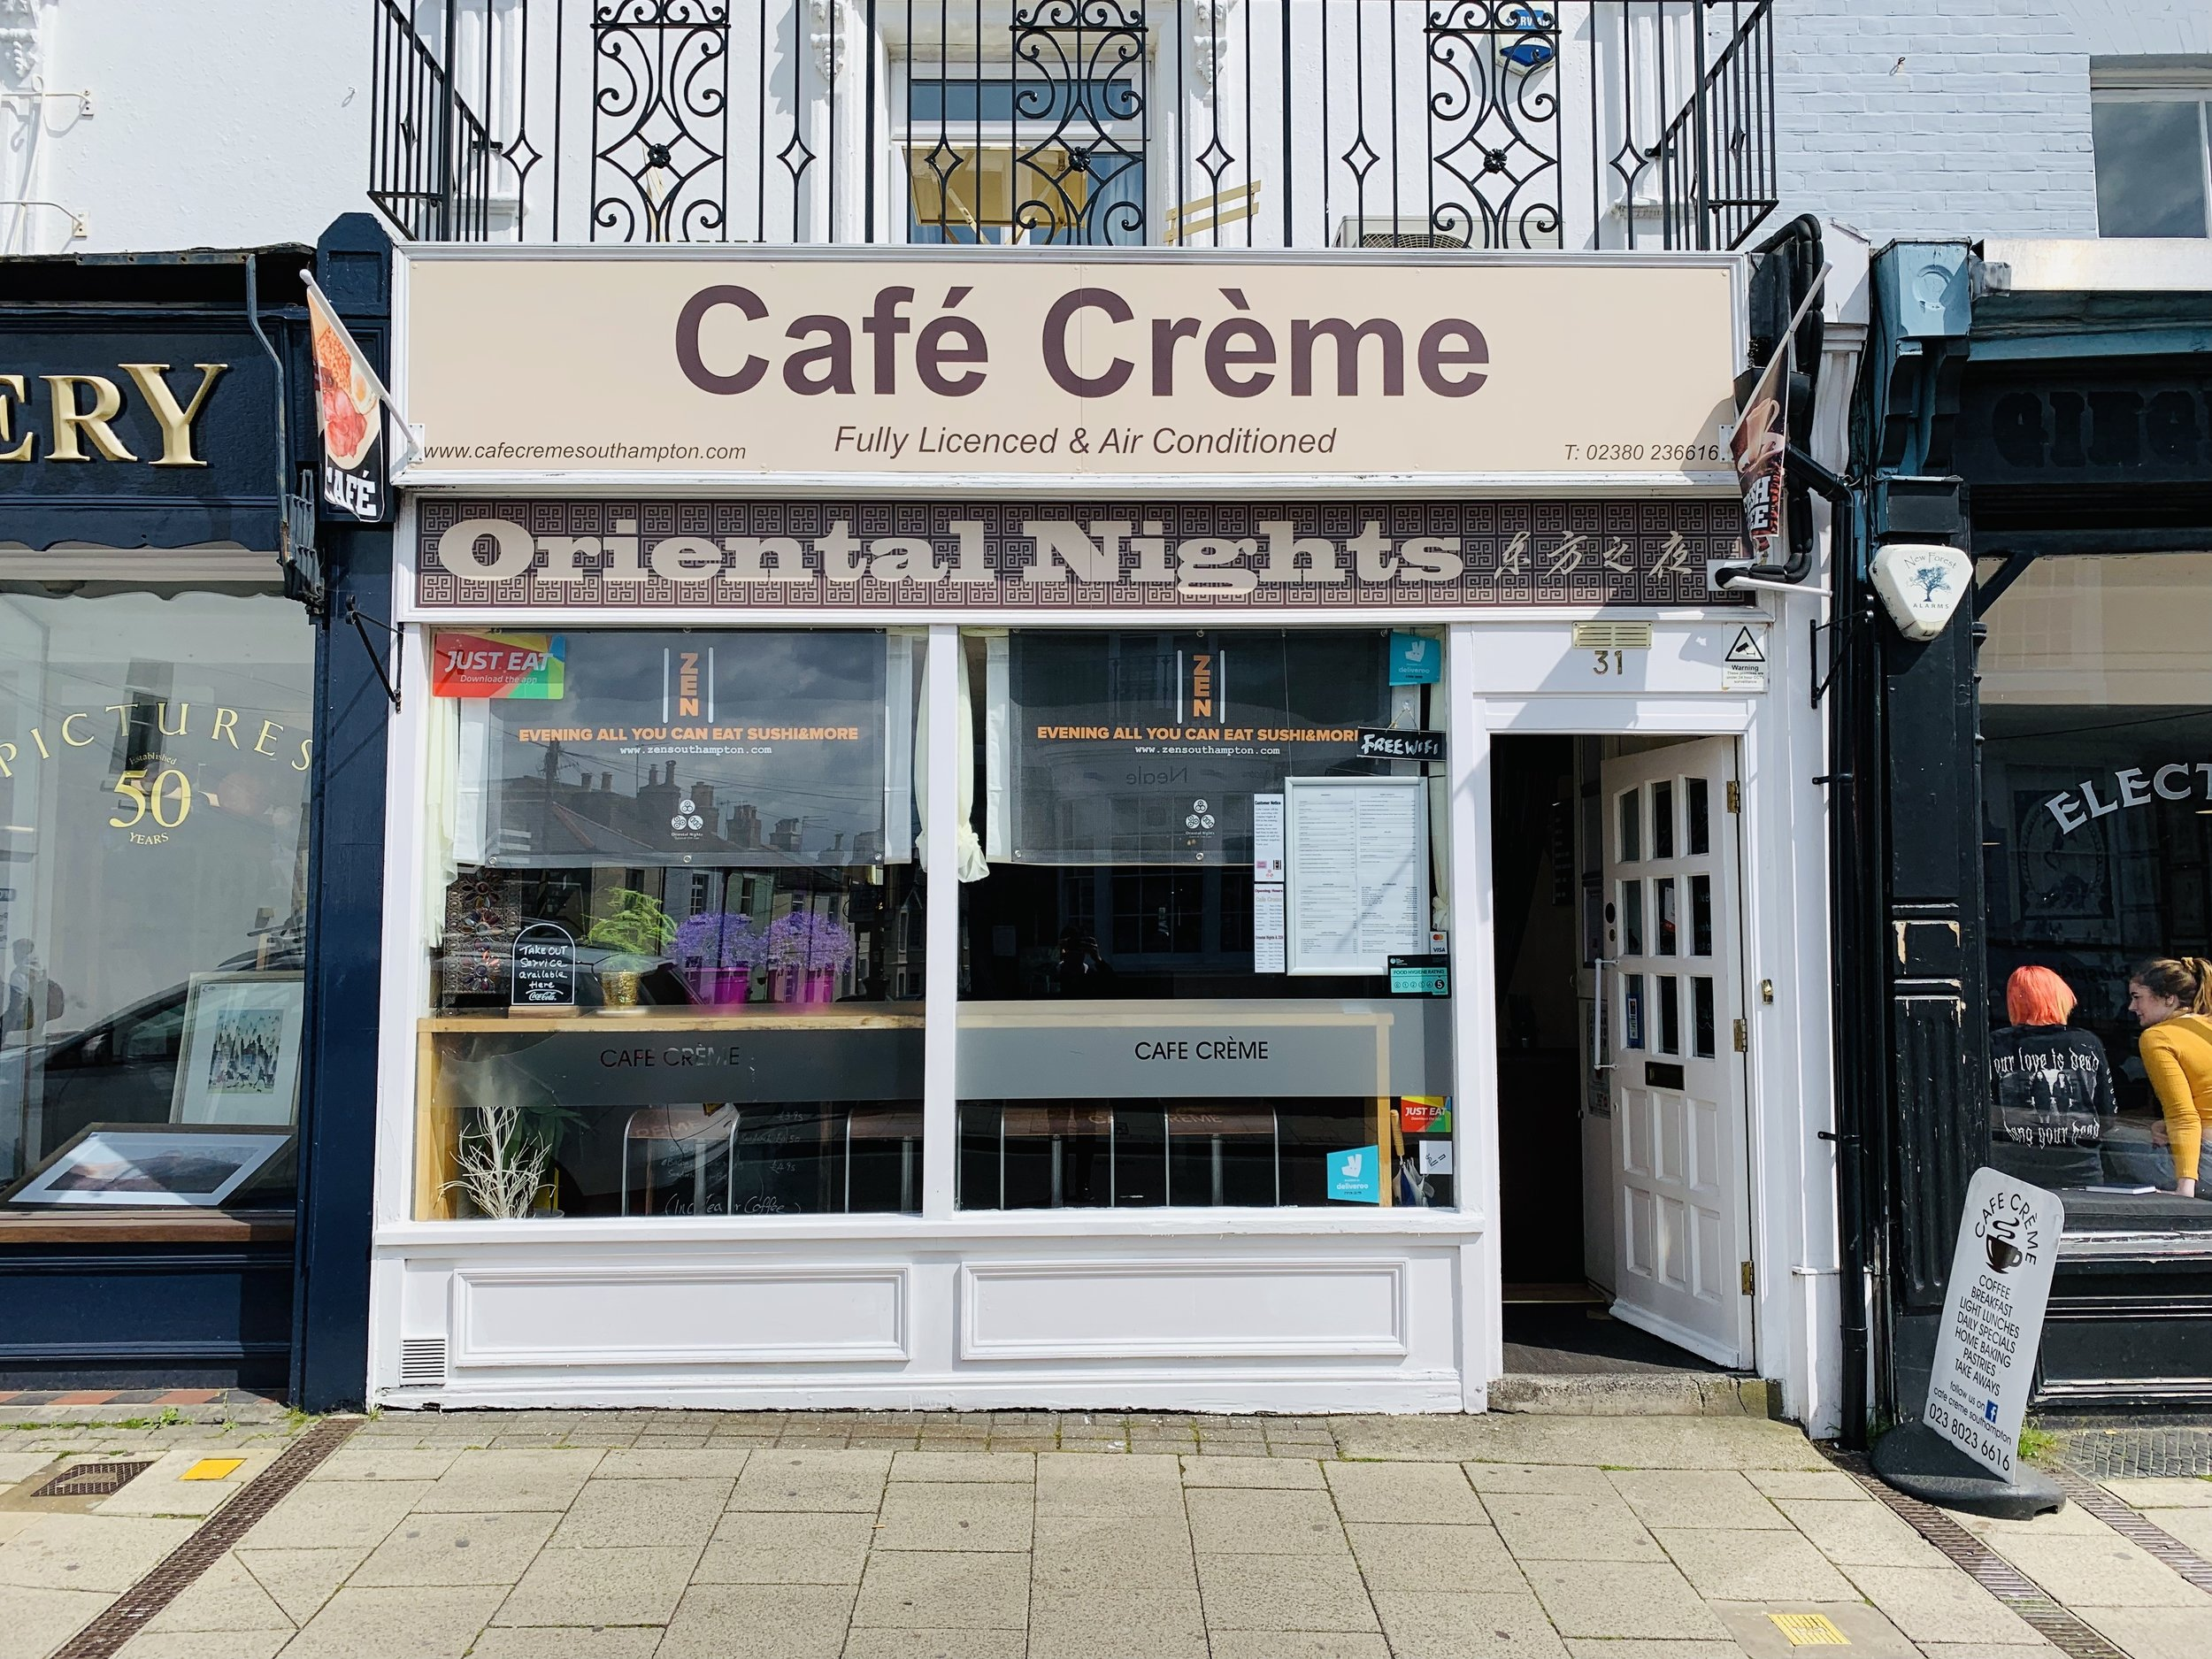 Zen is at Cafe Creme & Oriental Nights Zen - 31 Bedford Place, Southampton SO15 2DG